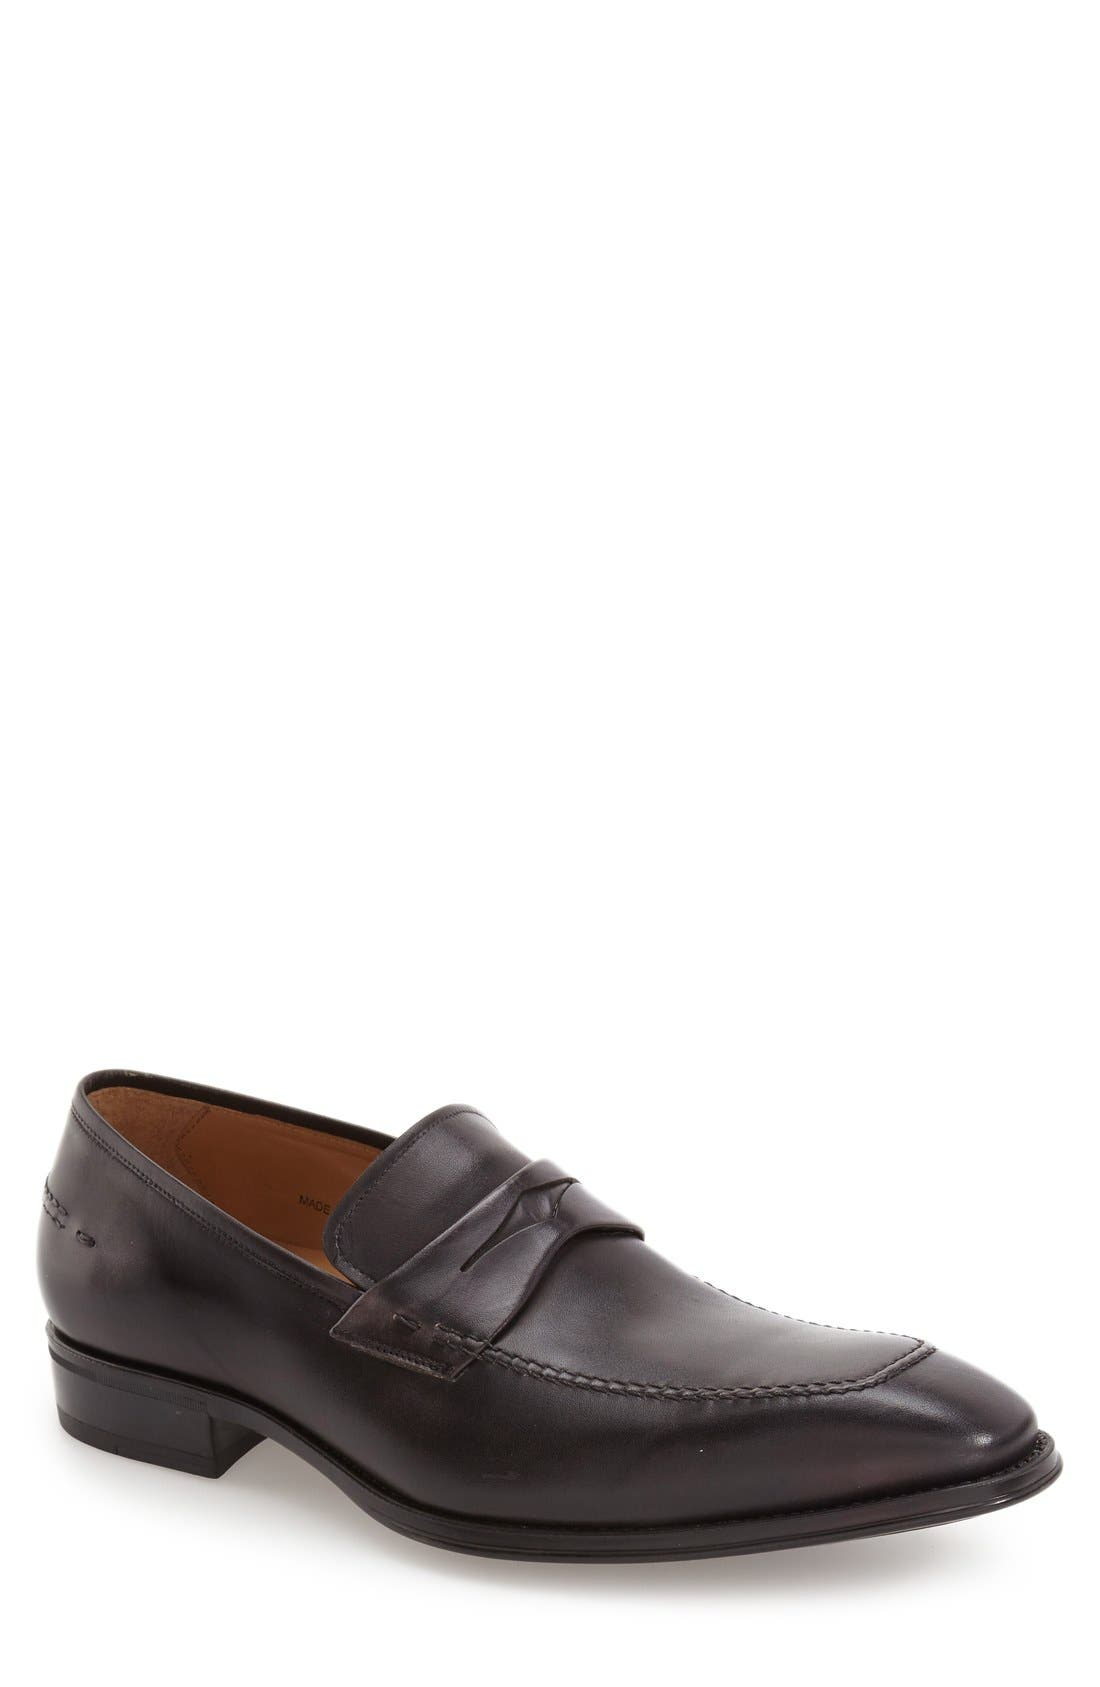 'Trento' Penny Loafer,                         Main,                         color, Black